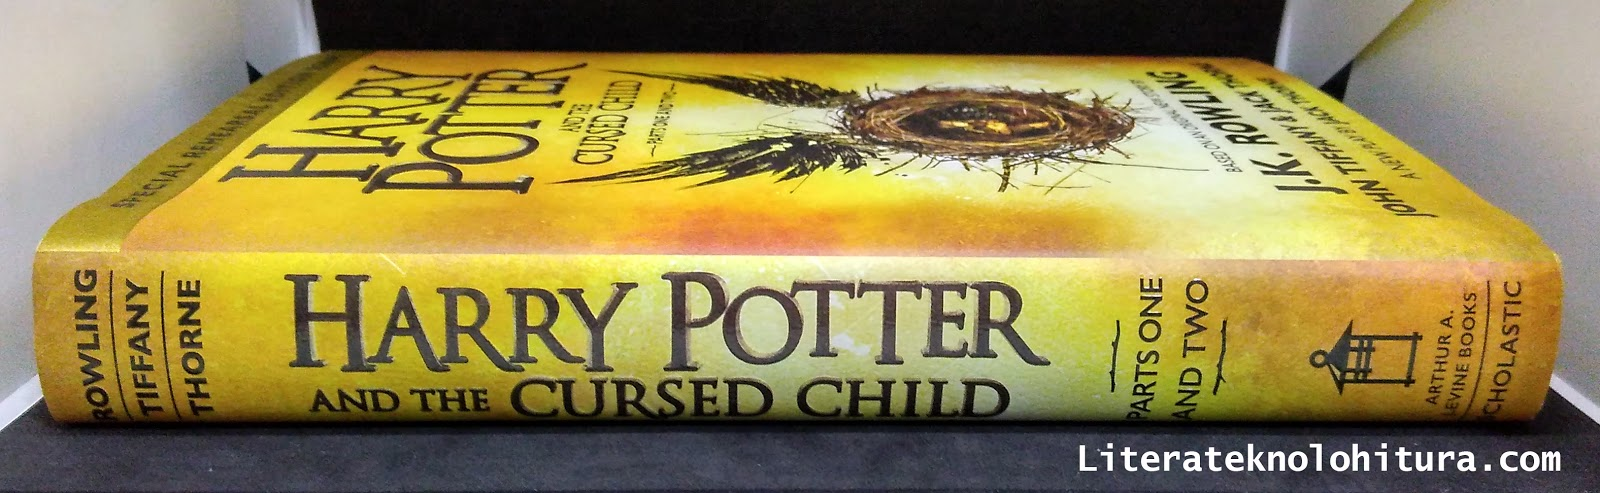 Harry Potter Cursed Child Book Cover ~ Book review harry potter and the cursed child by j k